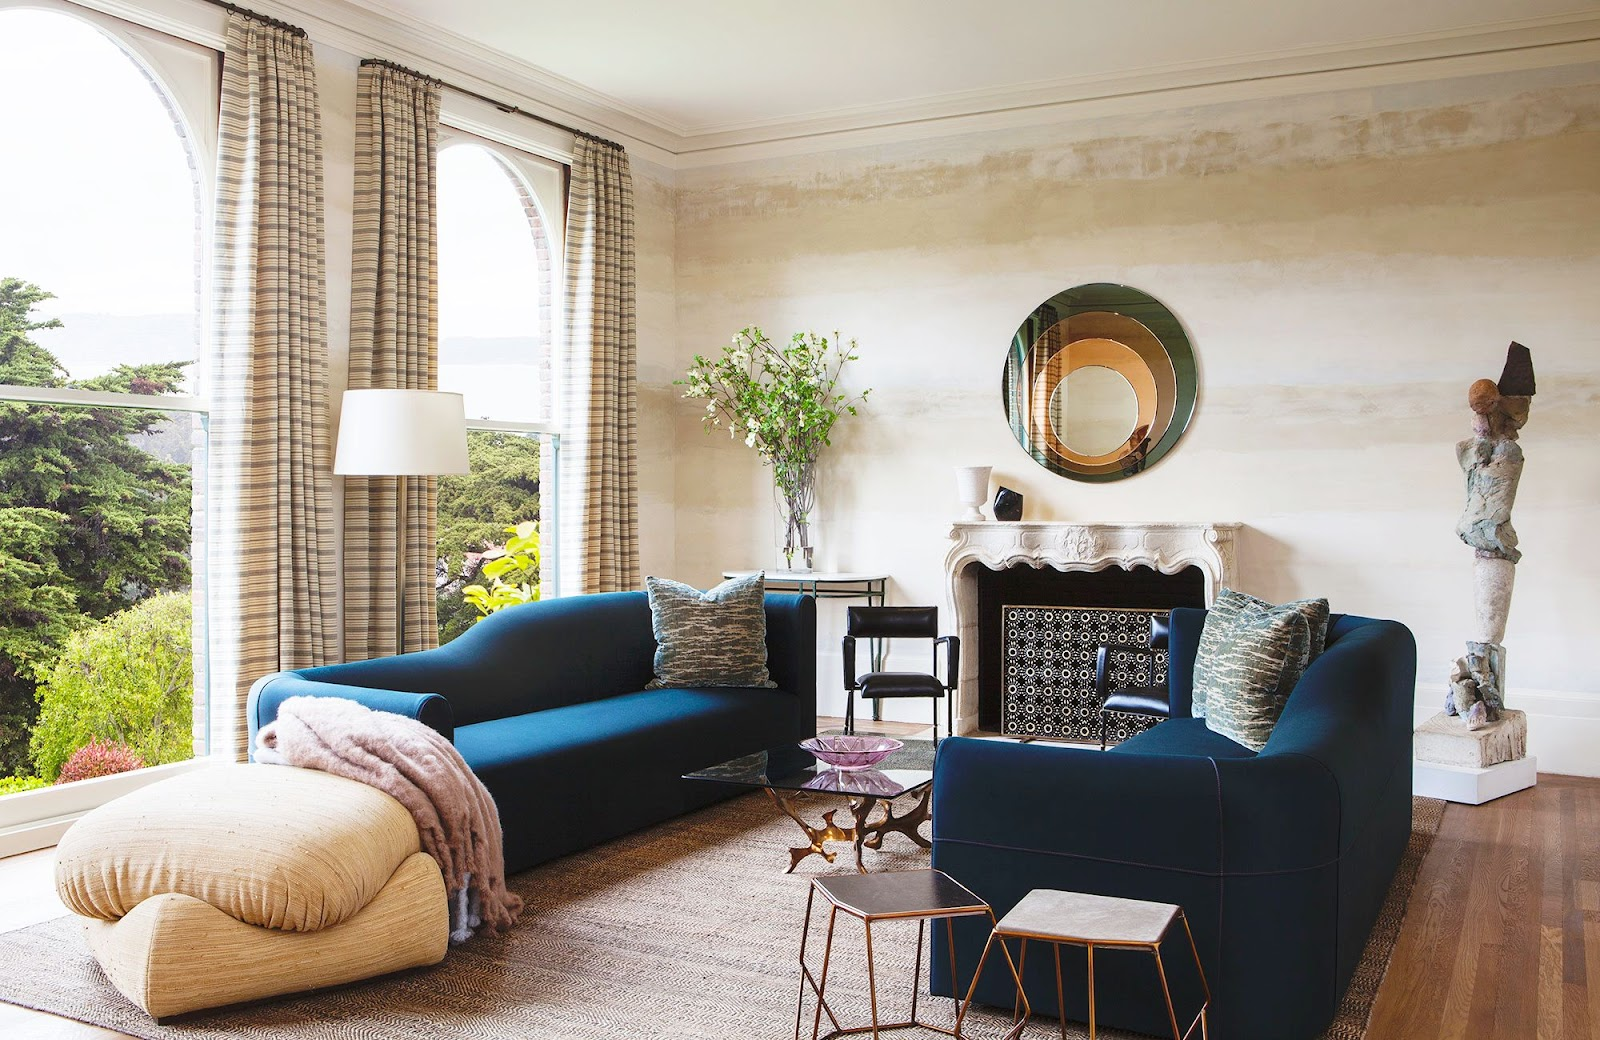 10 Luxury Interior Design Ideas to Apply on Your Home 1